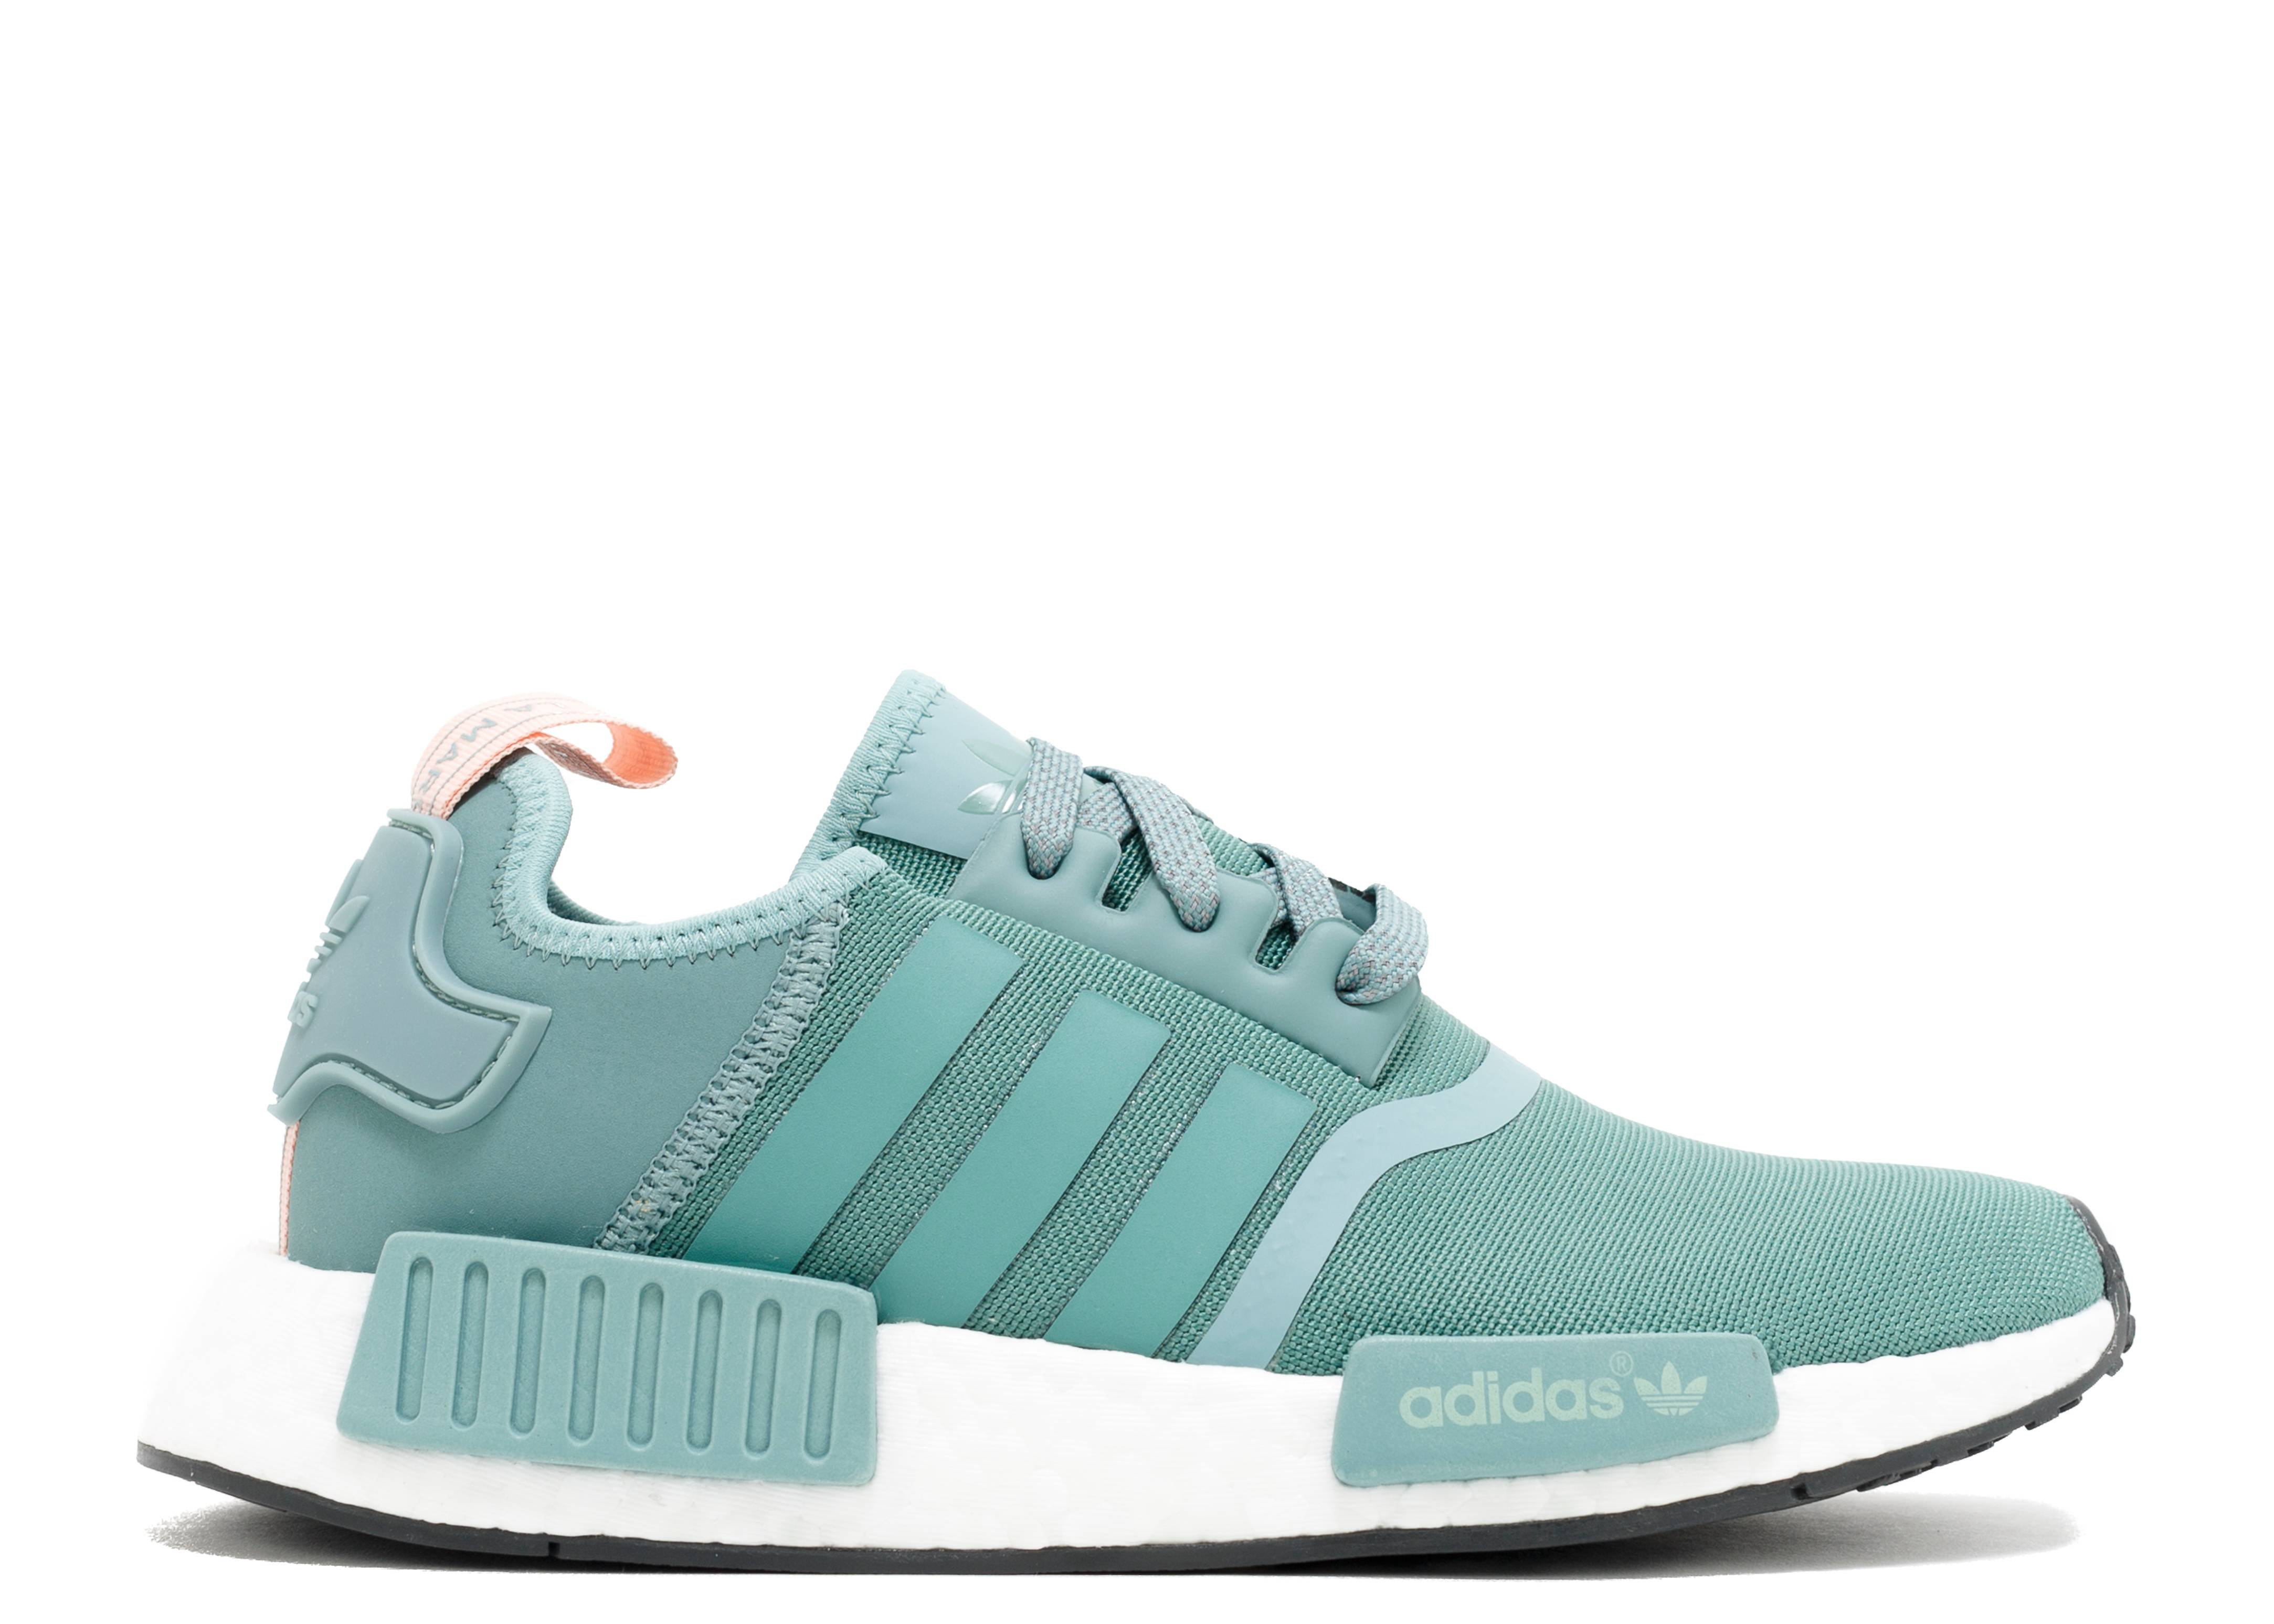 nmd r1 w adidas s76010 teal vintage white flight club. Black Bedroom Furniture Sets. Home Design Ideas